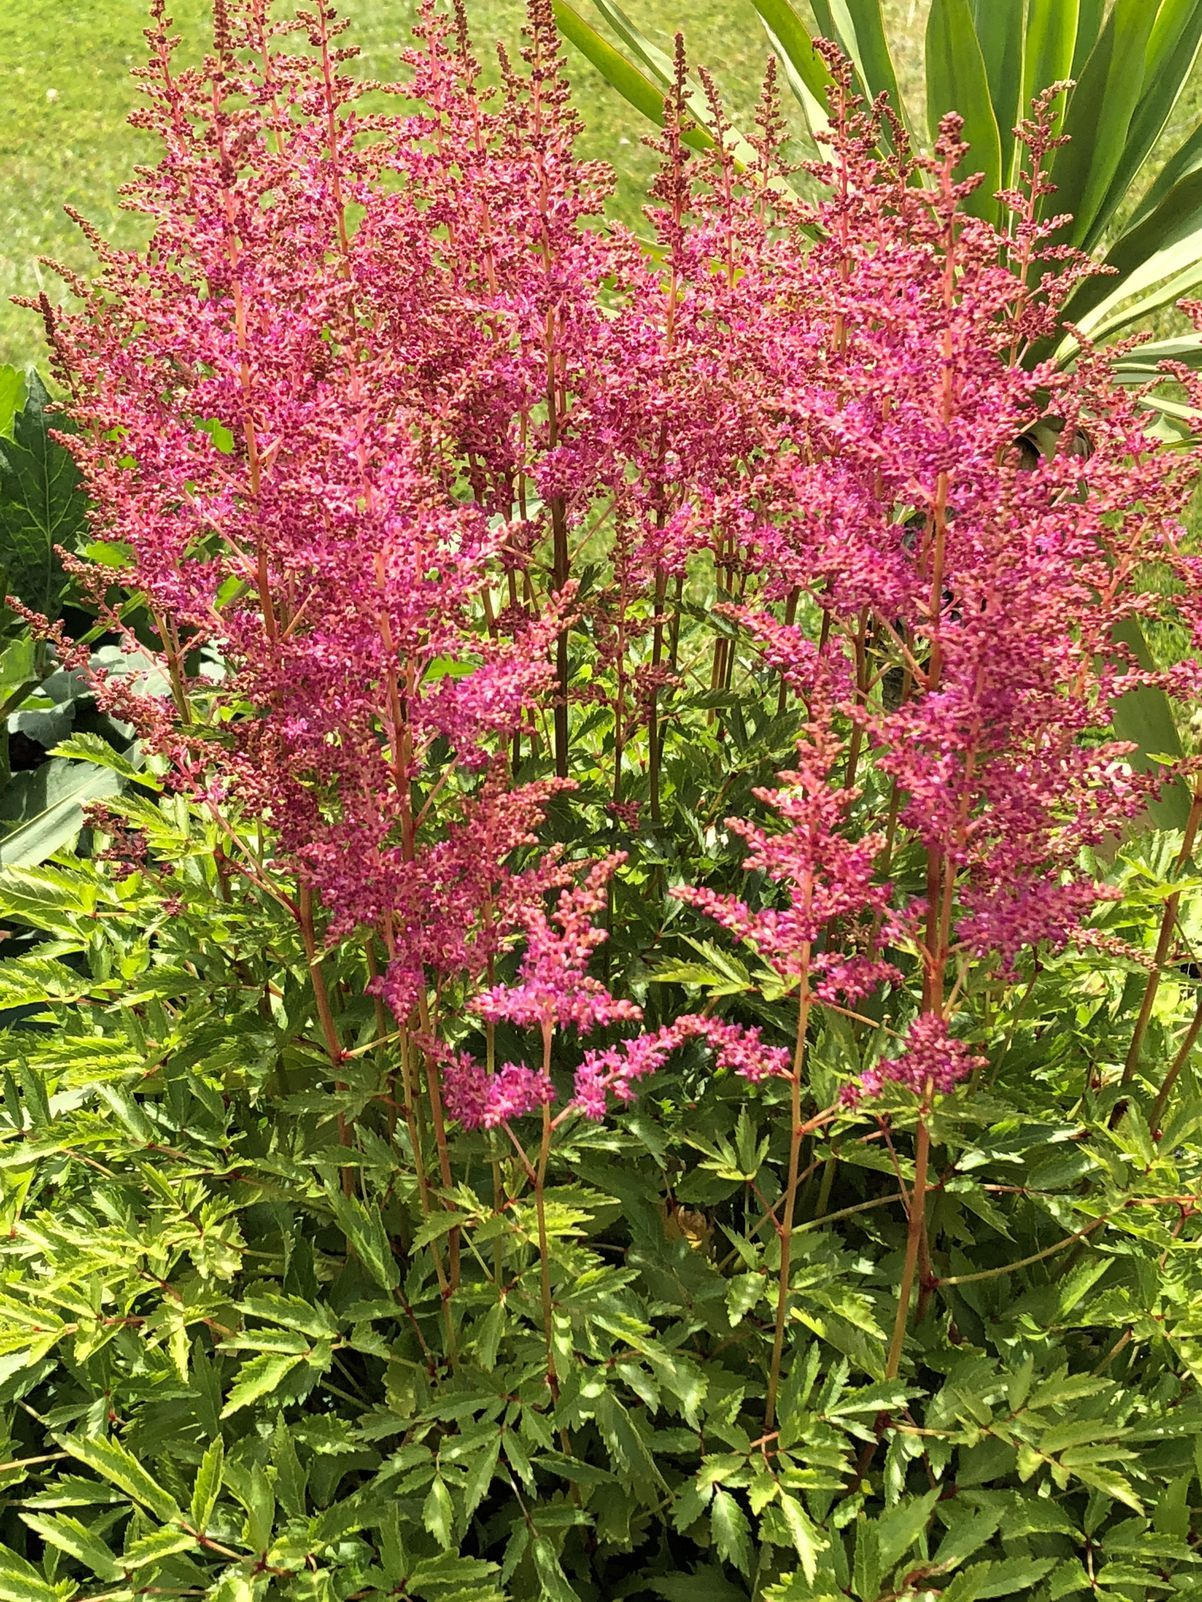 20 Perennials That Will Actually Thrive in Shade #shadeplantsperennial